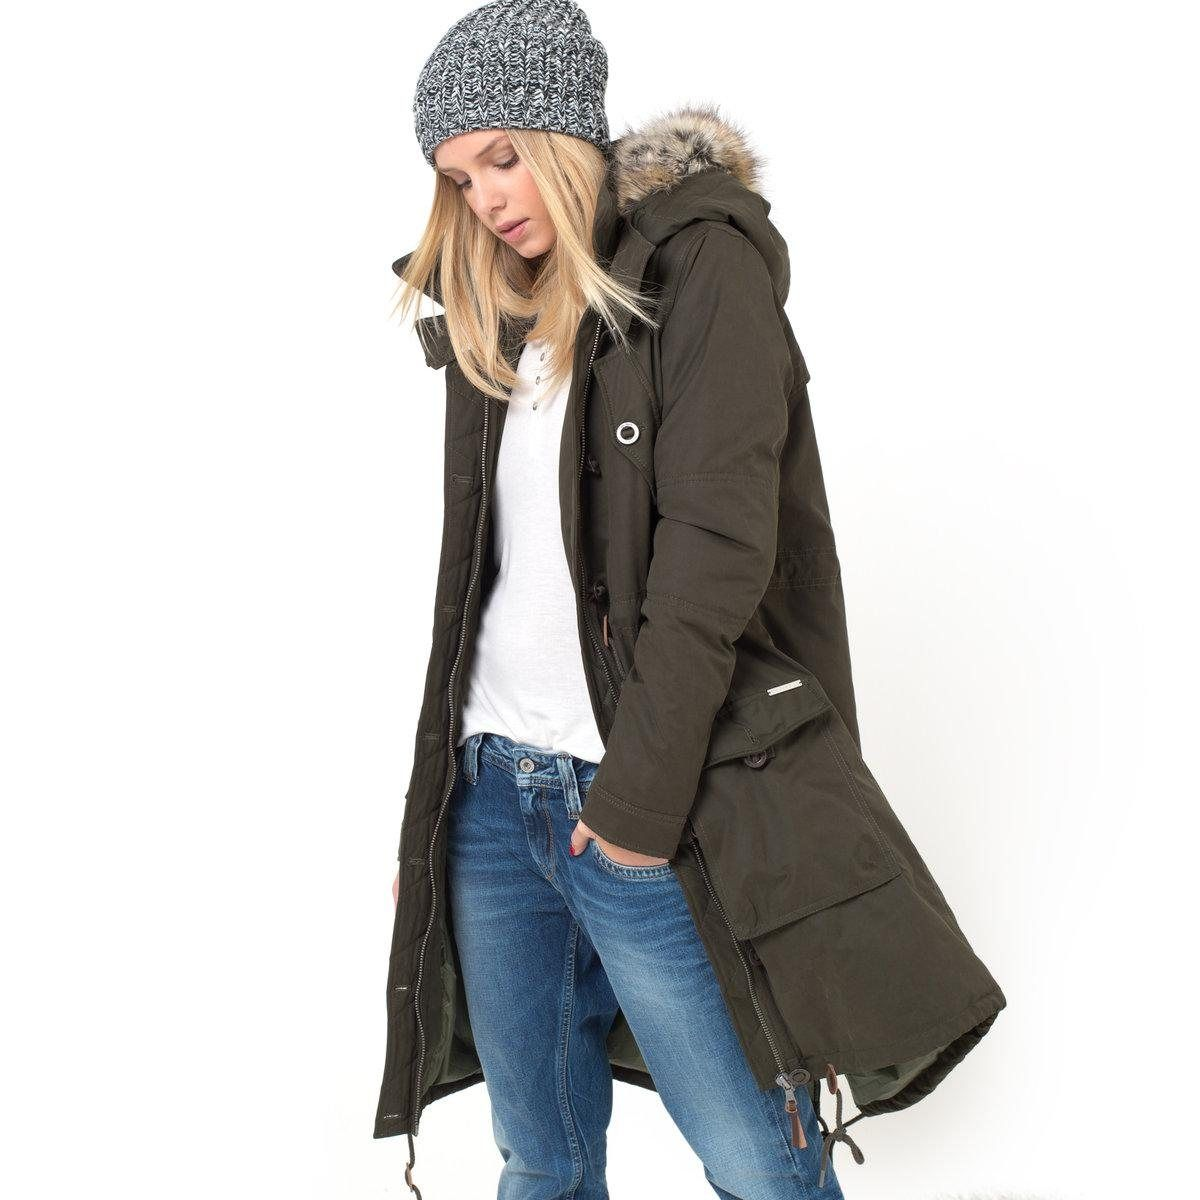 Tags french fashion la redoute secrets to french style style - Parka Pepe Jeans Prix Promo Parka Femme Pepe Jeans La Redoute 299 00